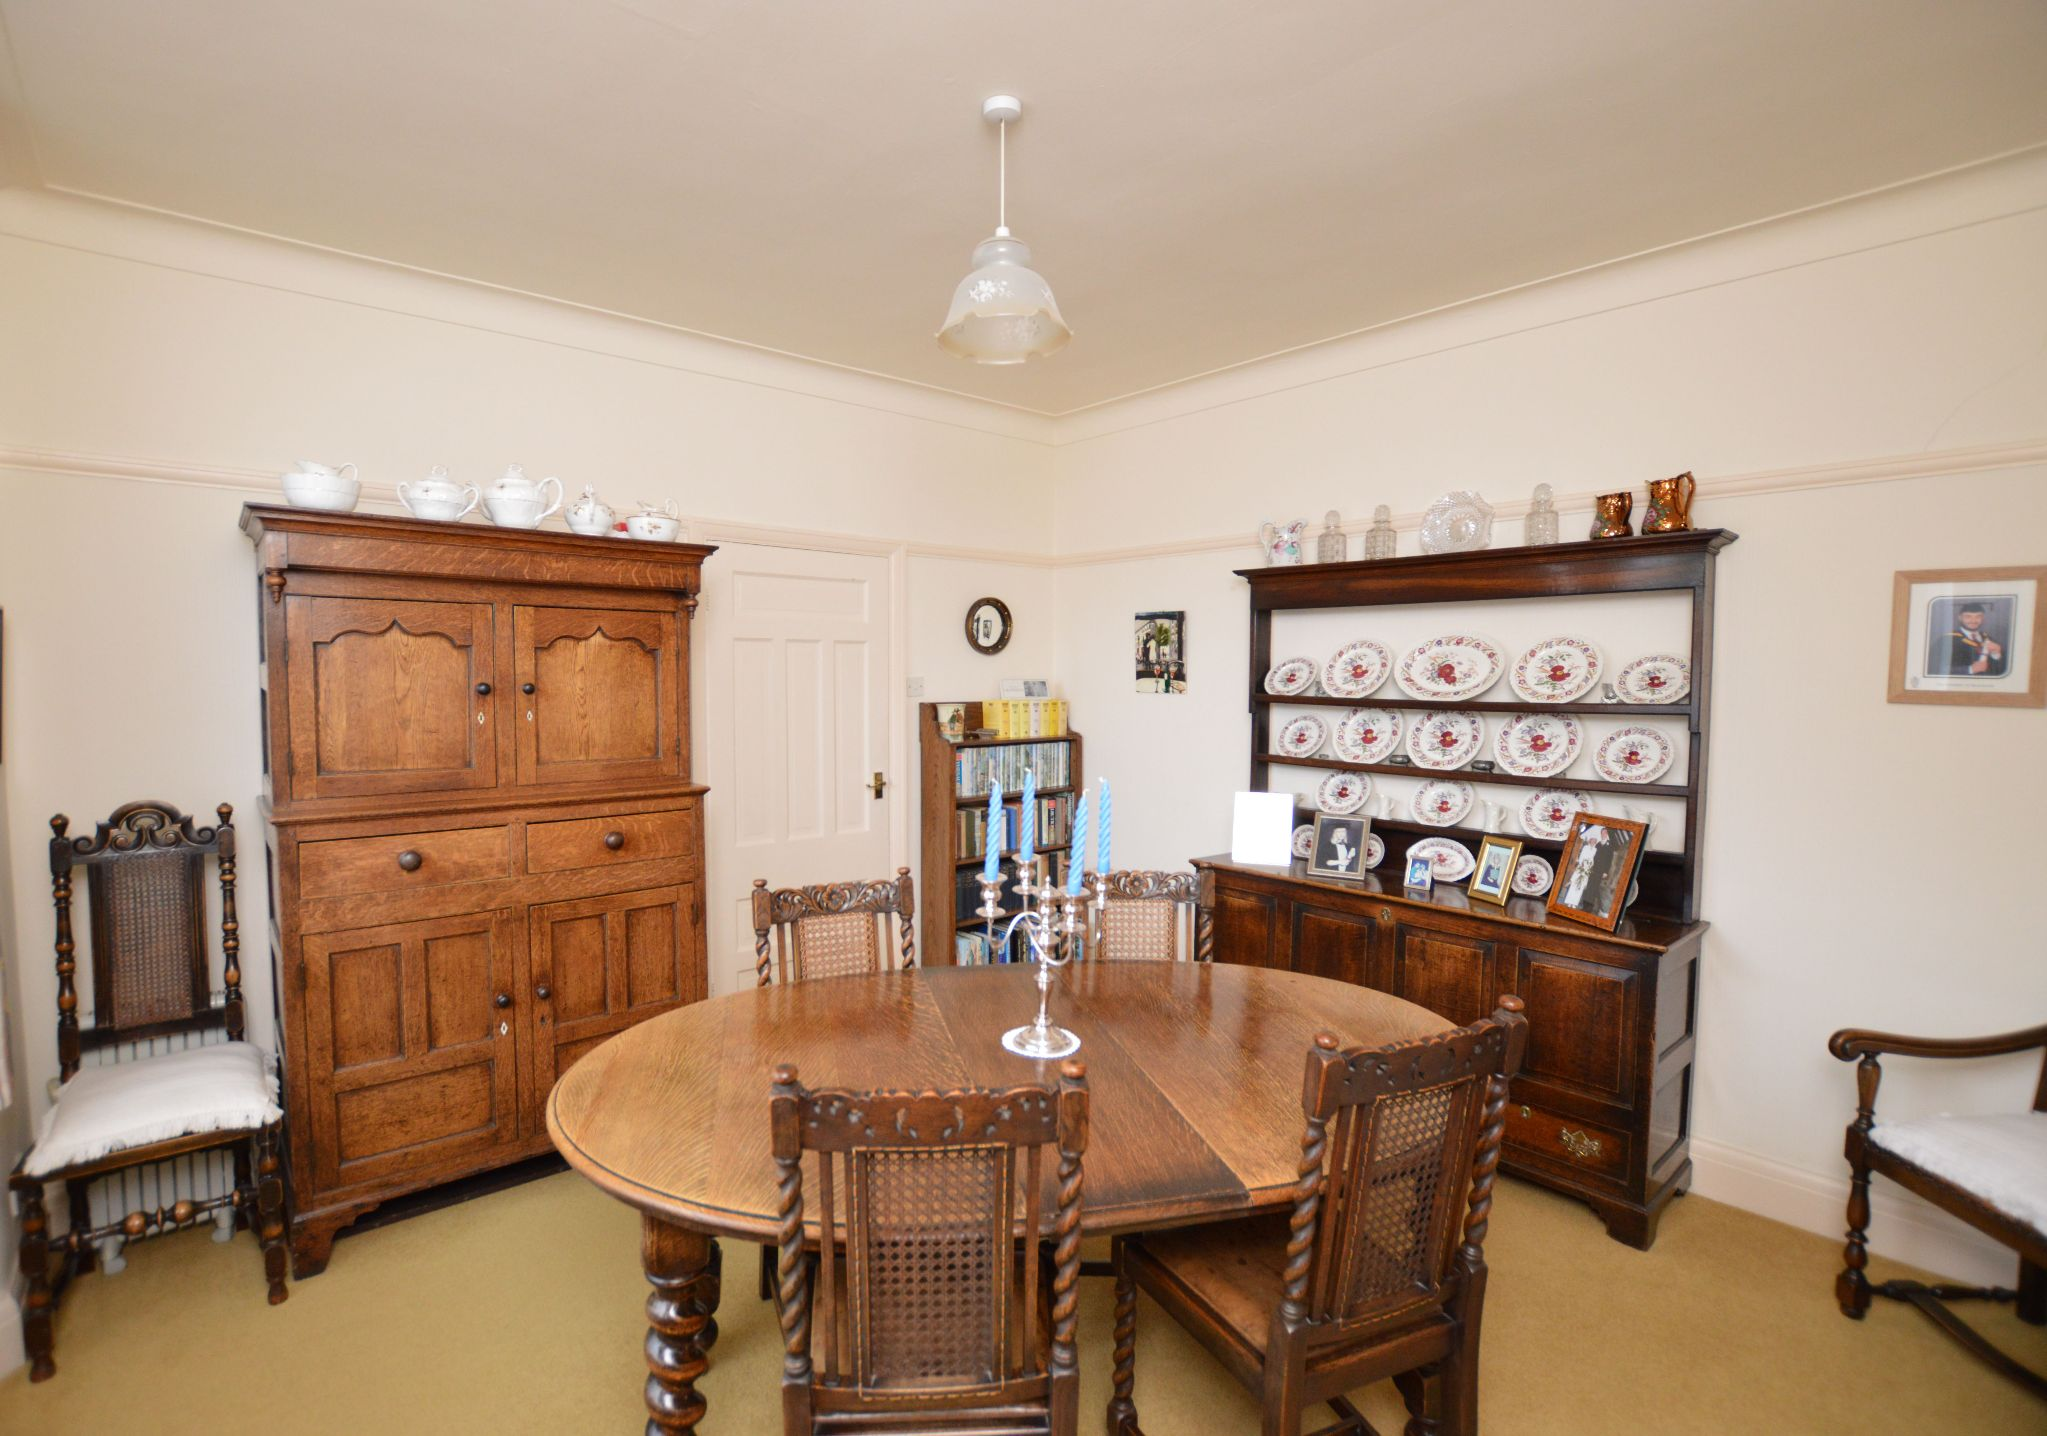 4 bedroom detached house For Sale in Abergele - Diner/Bedroom 4 View 2